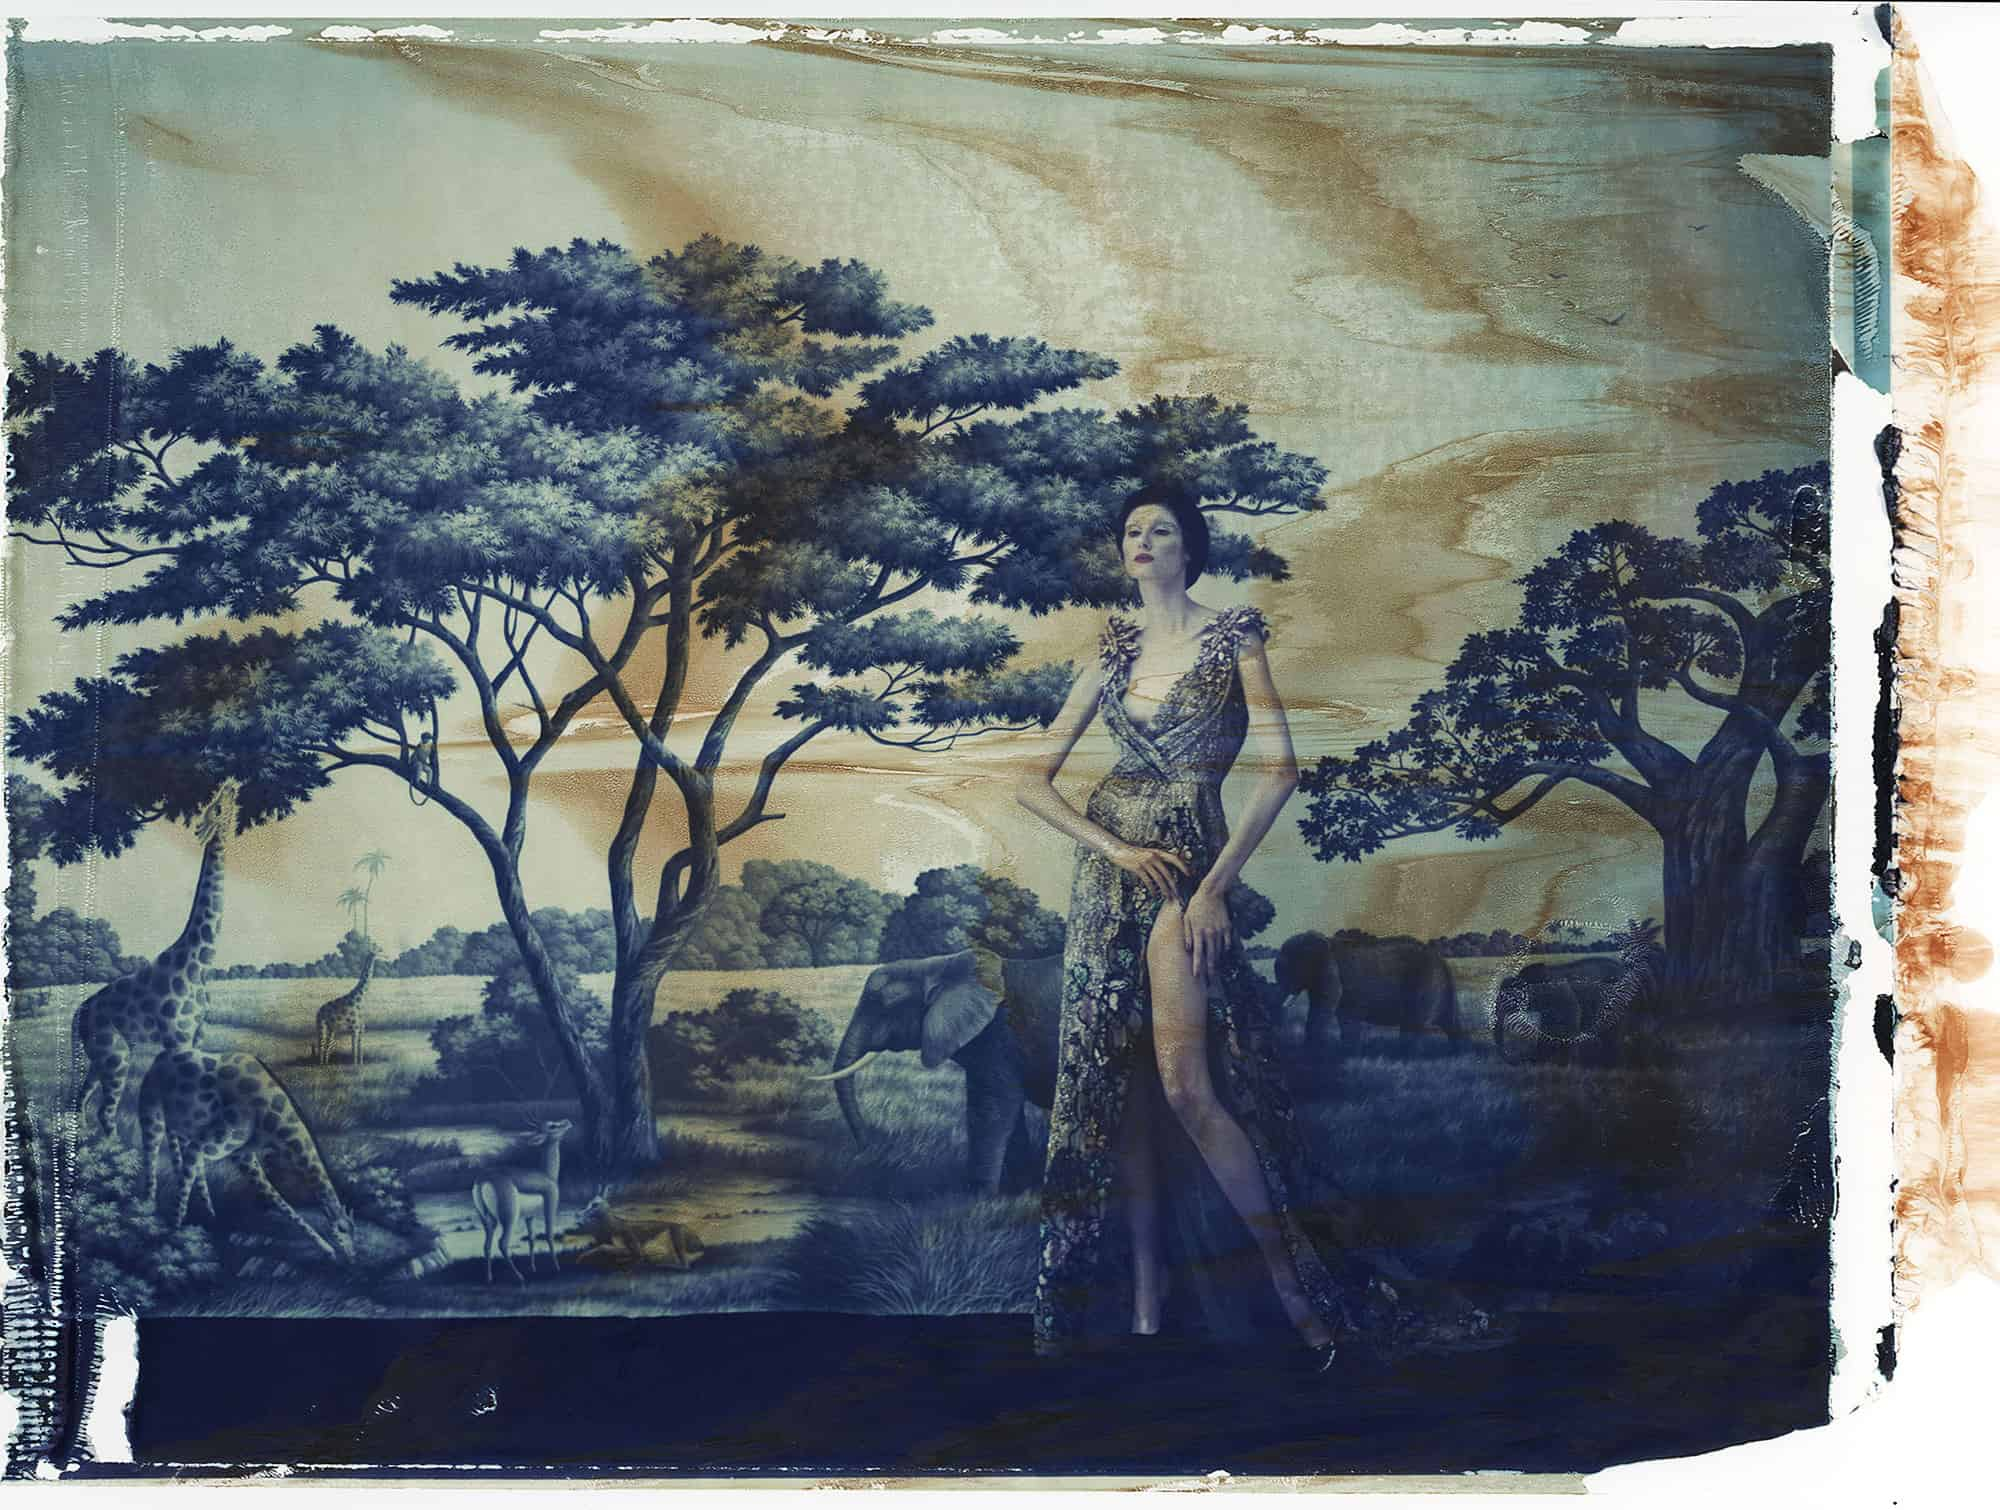 Fine art color photography of fashion model wearing haute couture by Elie Saab in front of a painted wallpaper depicting the Serengti, Africa, with elephants, giraffes and antelopes. Wallpaper by de Gournay.